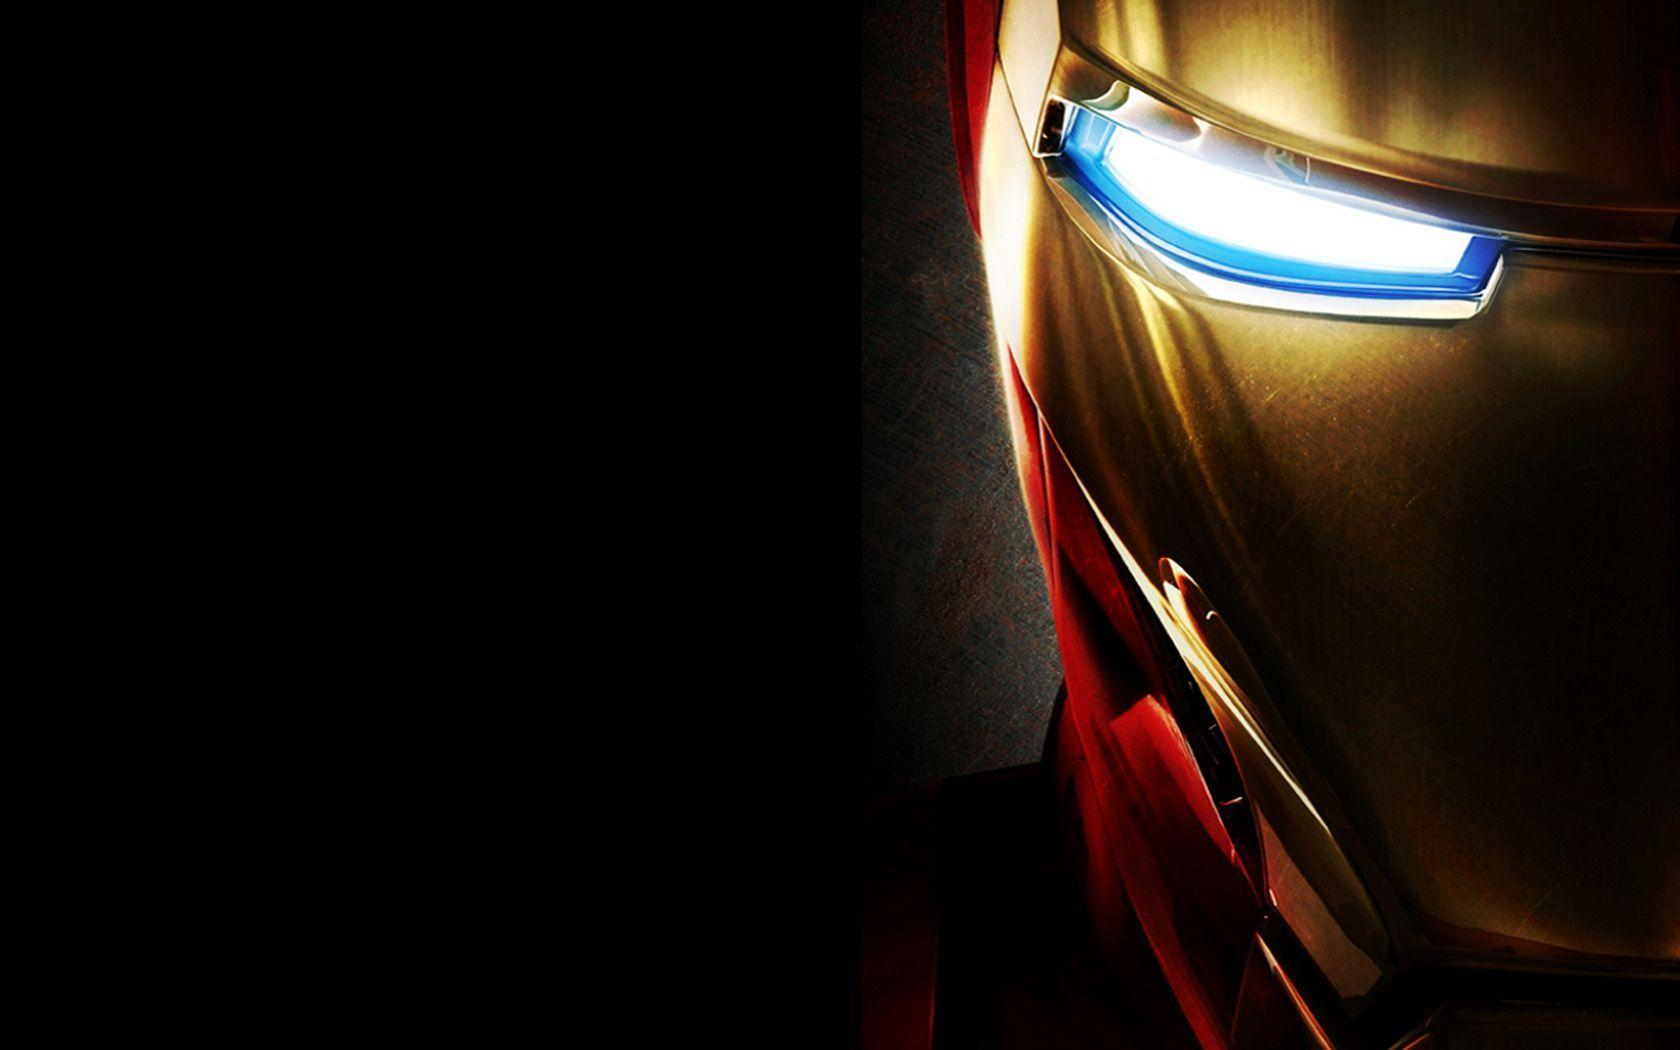 35 Iron Man Hd Wallpapers For Desktop: Iron Man HD Wallpapers